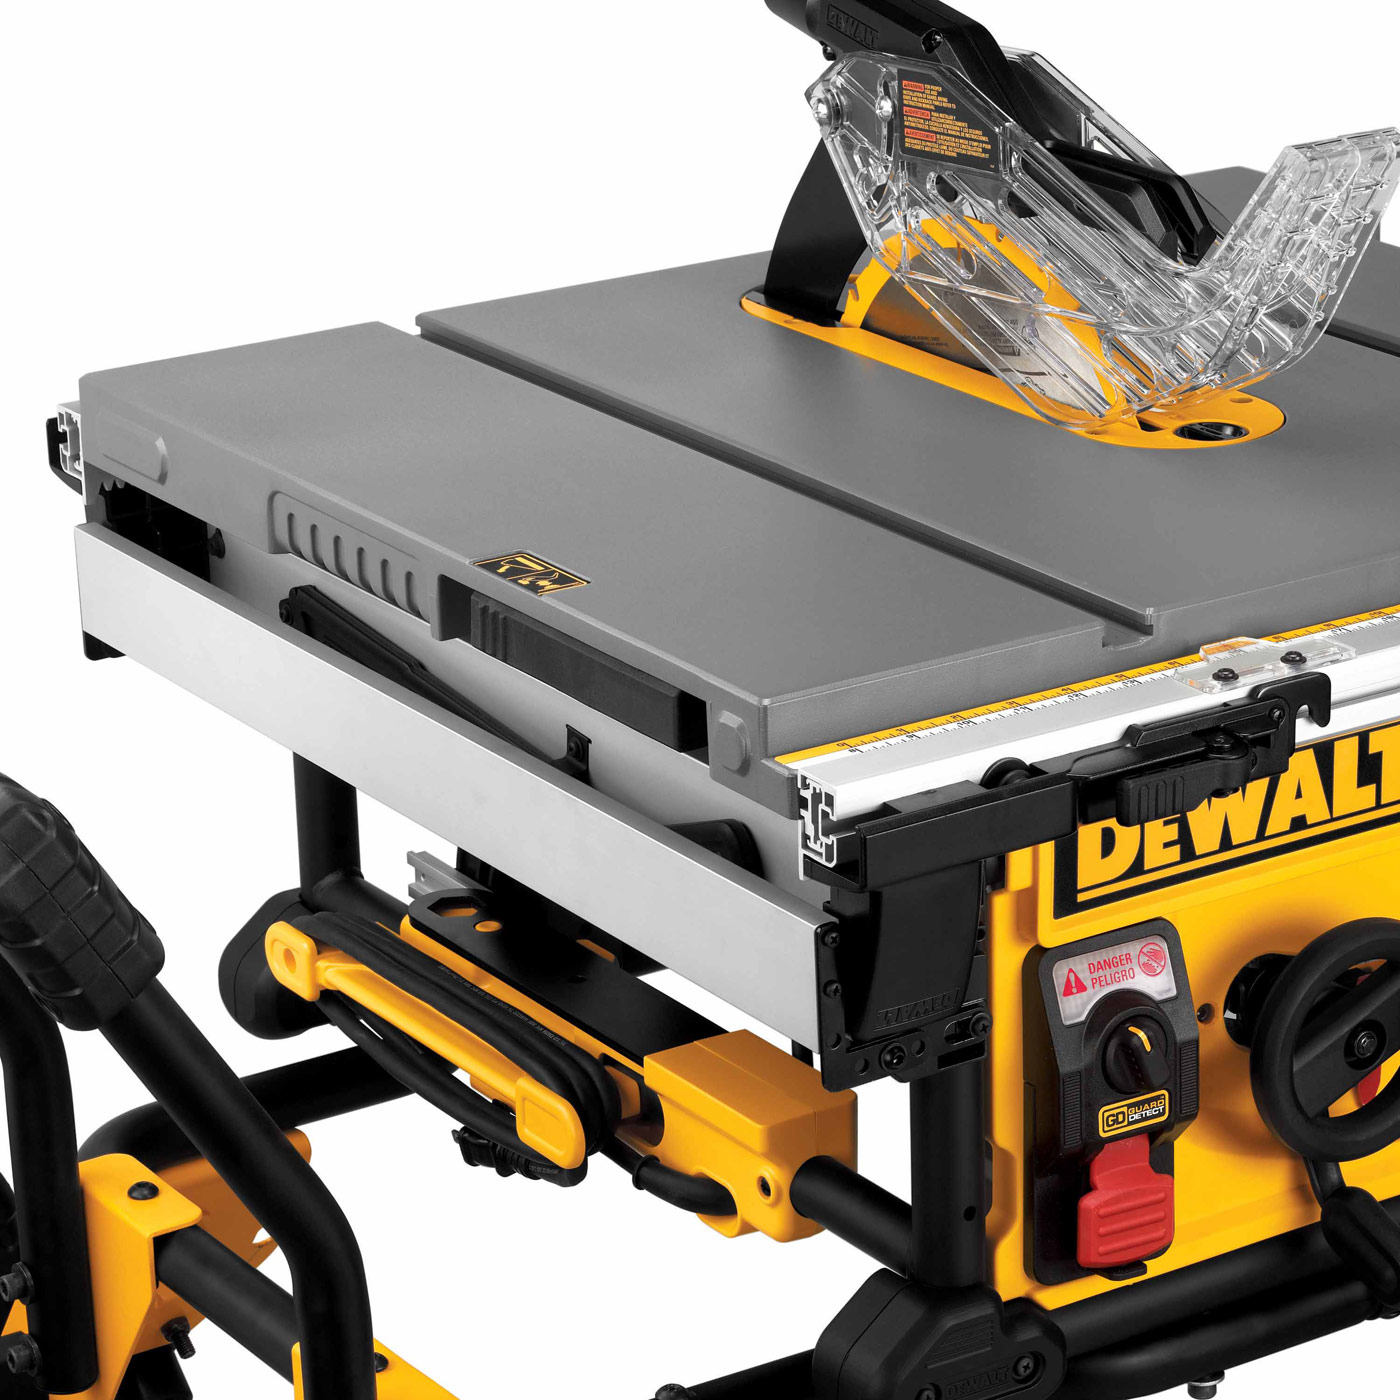 Dewalt dwe7499gd 10 jobsite table saw with guard detect for 10 jobsite table saw